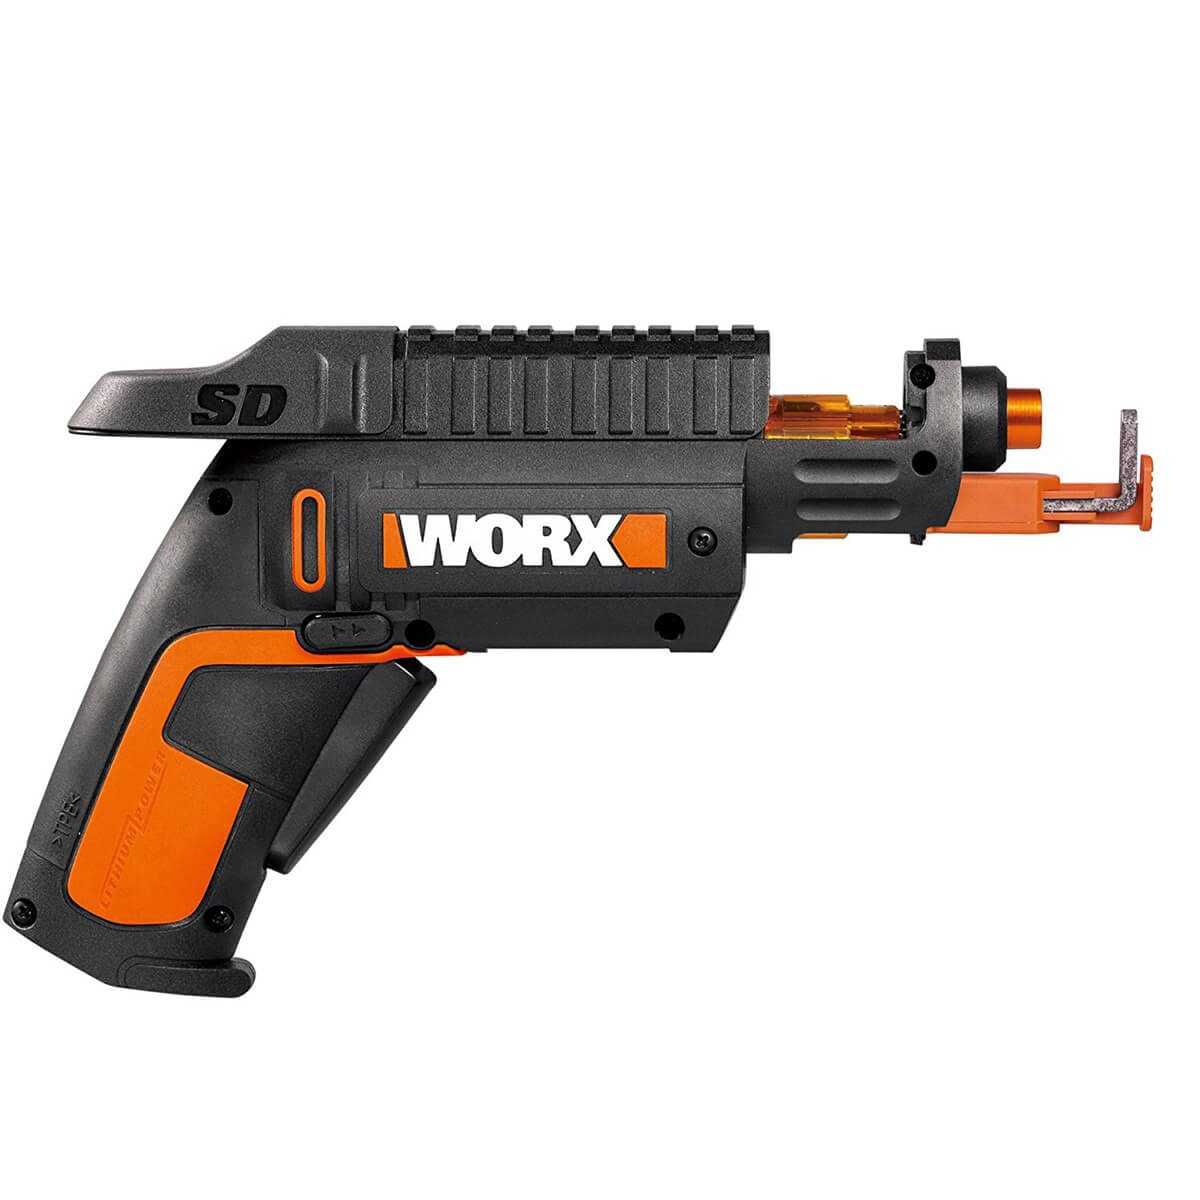 WORX Power Screwdriver